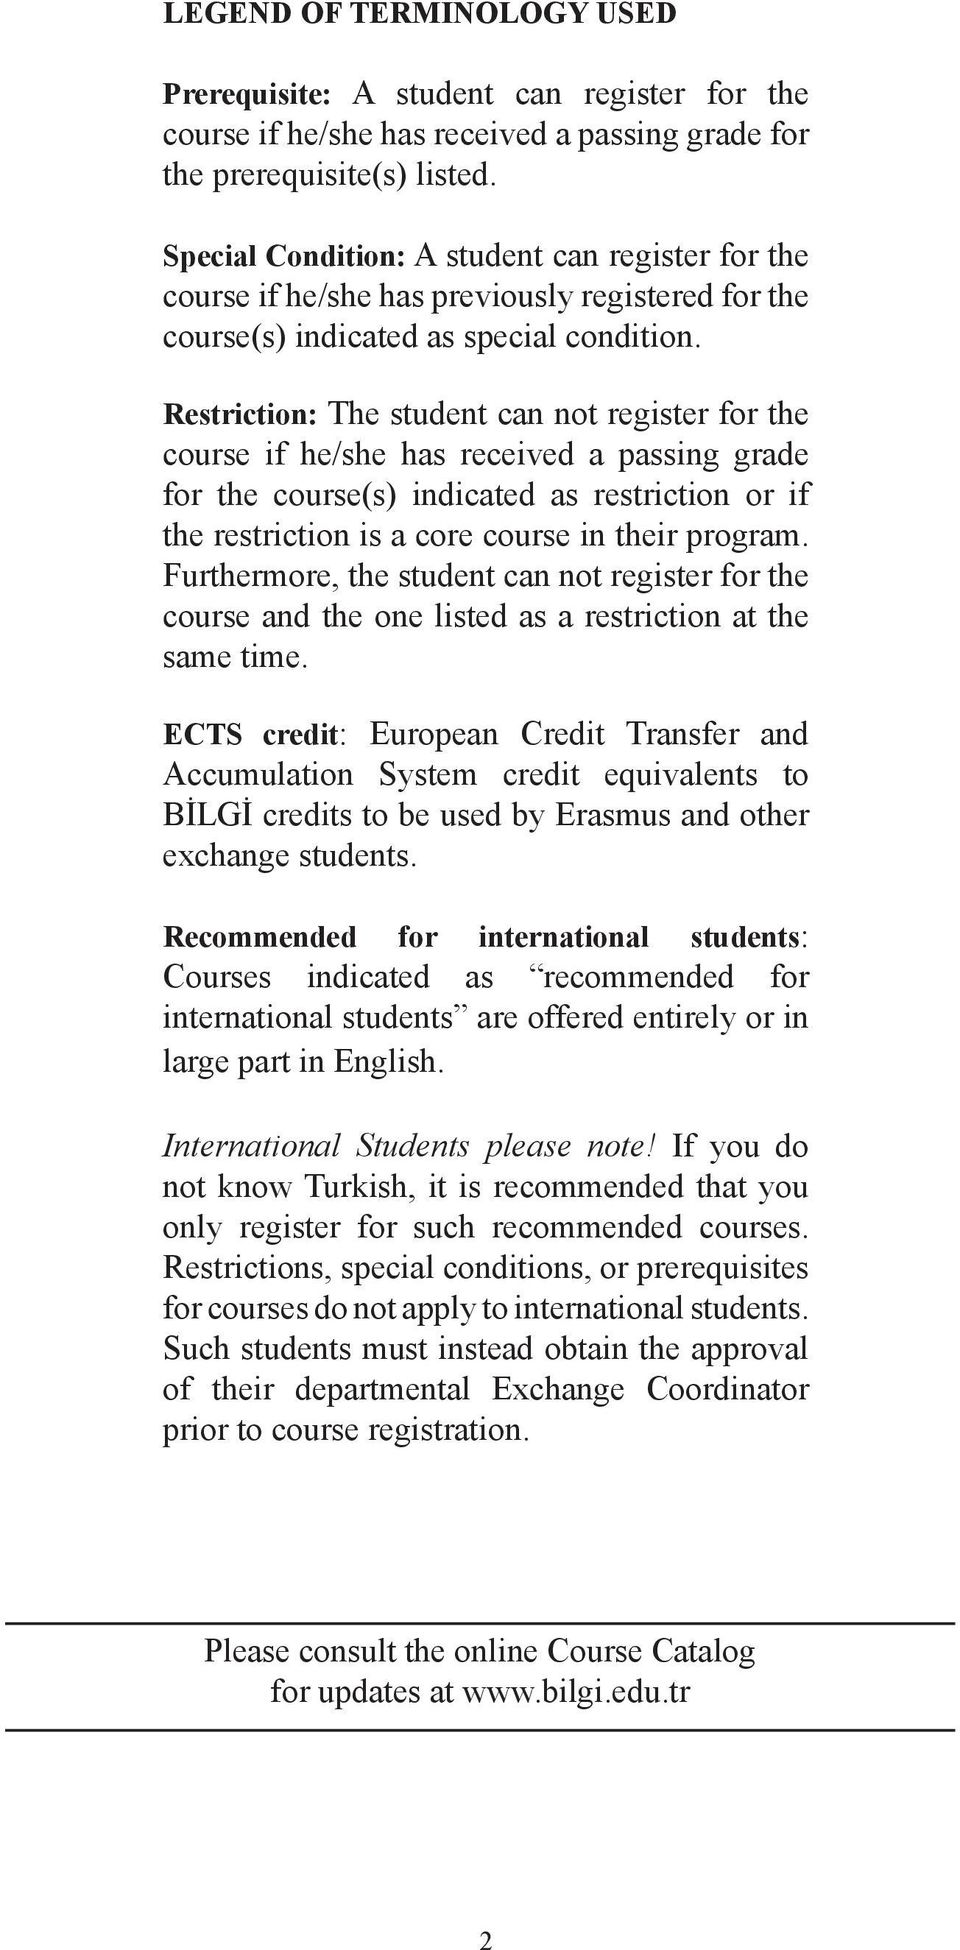 Restriction: The student can not register for the course if he/she has received a passing grade for the course(s) indicated as restriction or if the restriction is a core course in their program.